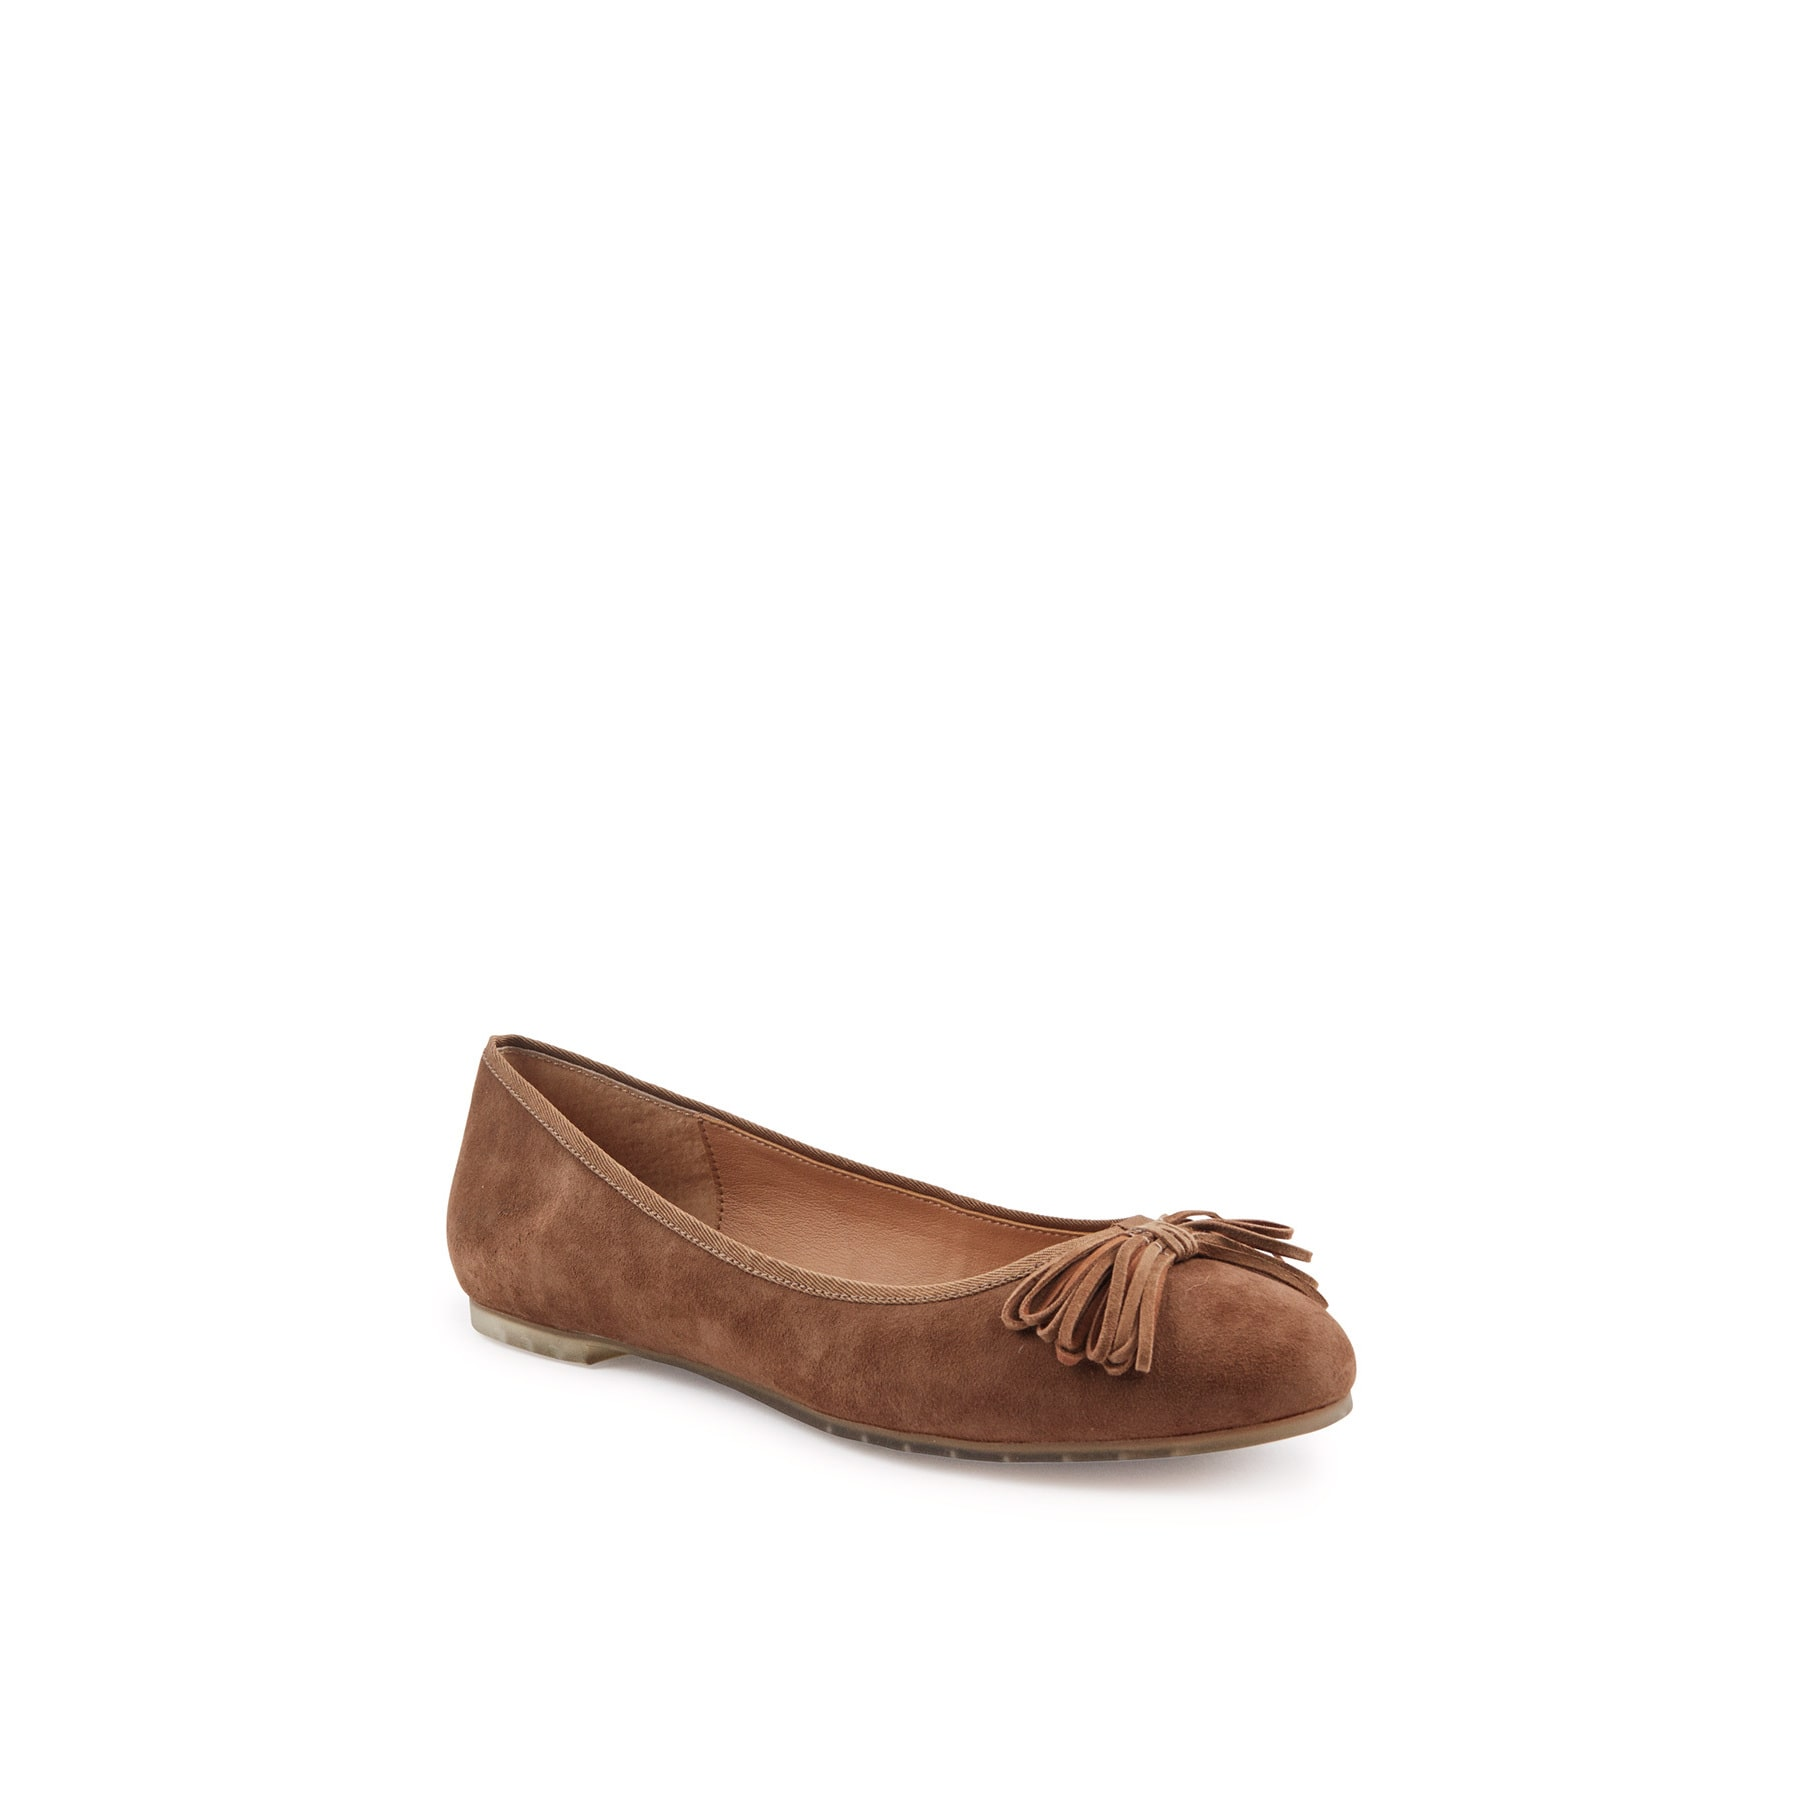 Me Too Women's Cassi14 Chestnut Suede Flats by Overstock